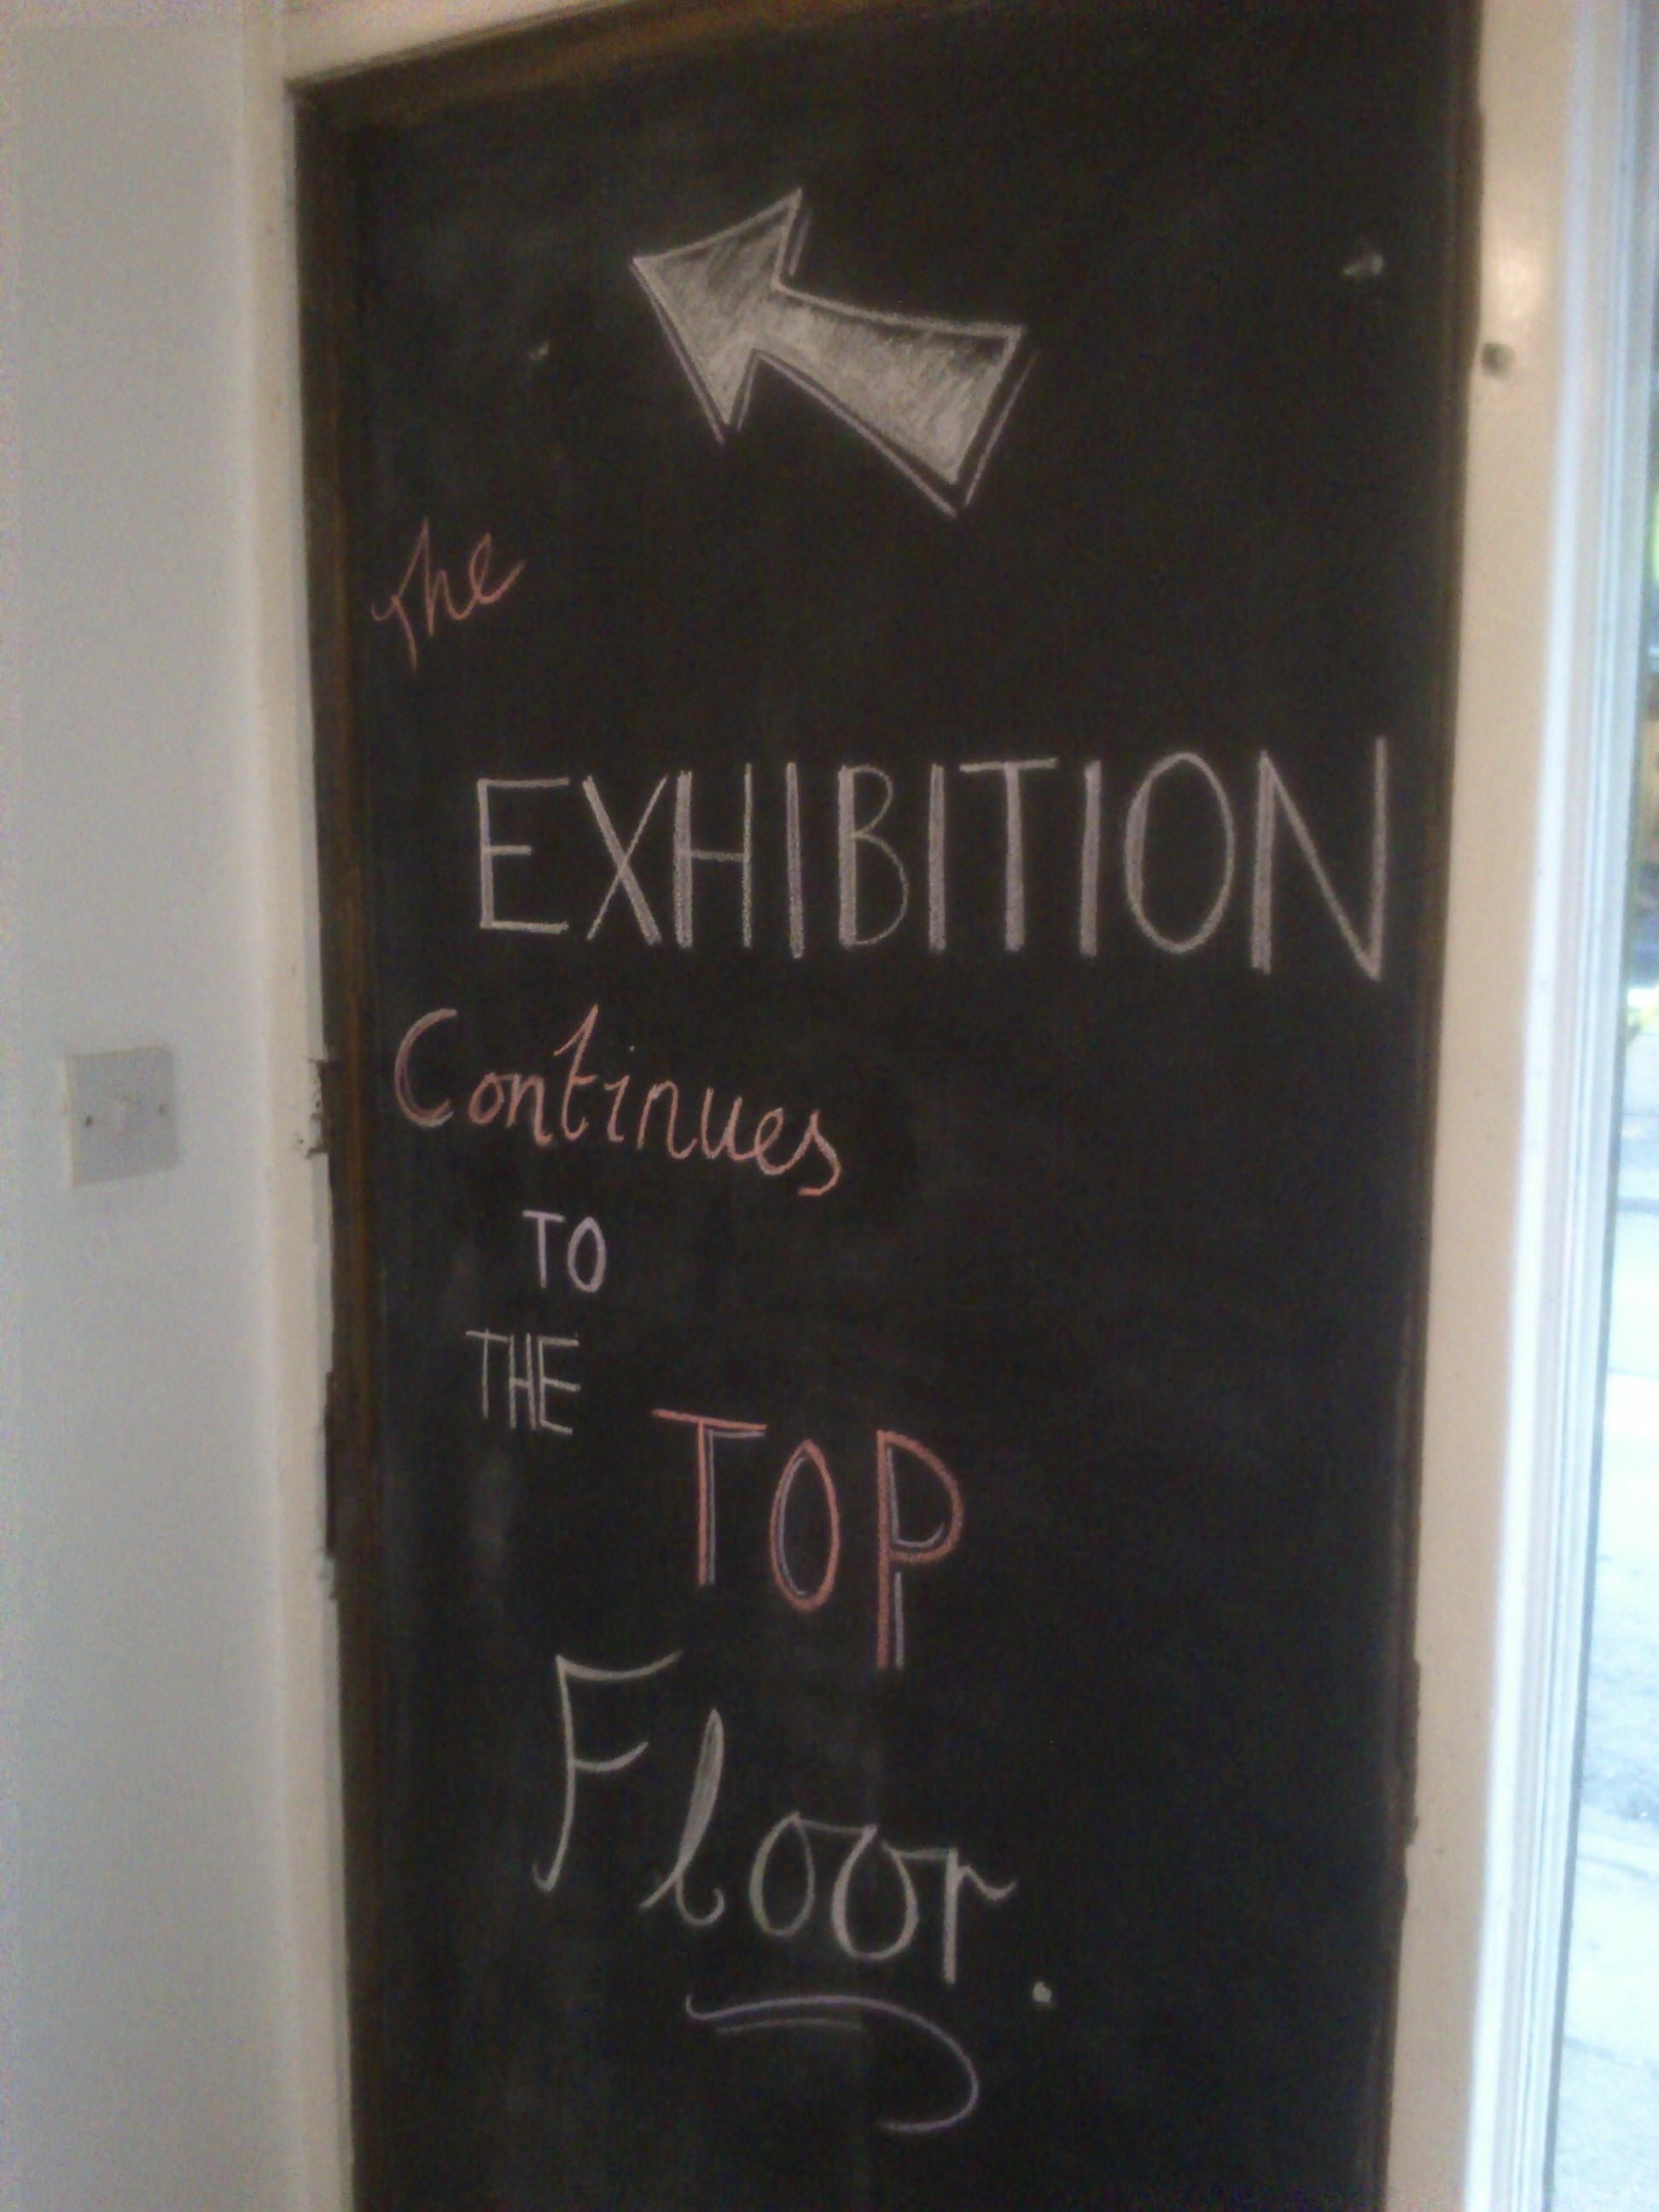 Brilliant that MadLab's had a chalkboard. Georgia hand drew some signs to show visitors where to go. Looked really good and made the exhibition flow well.